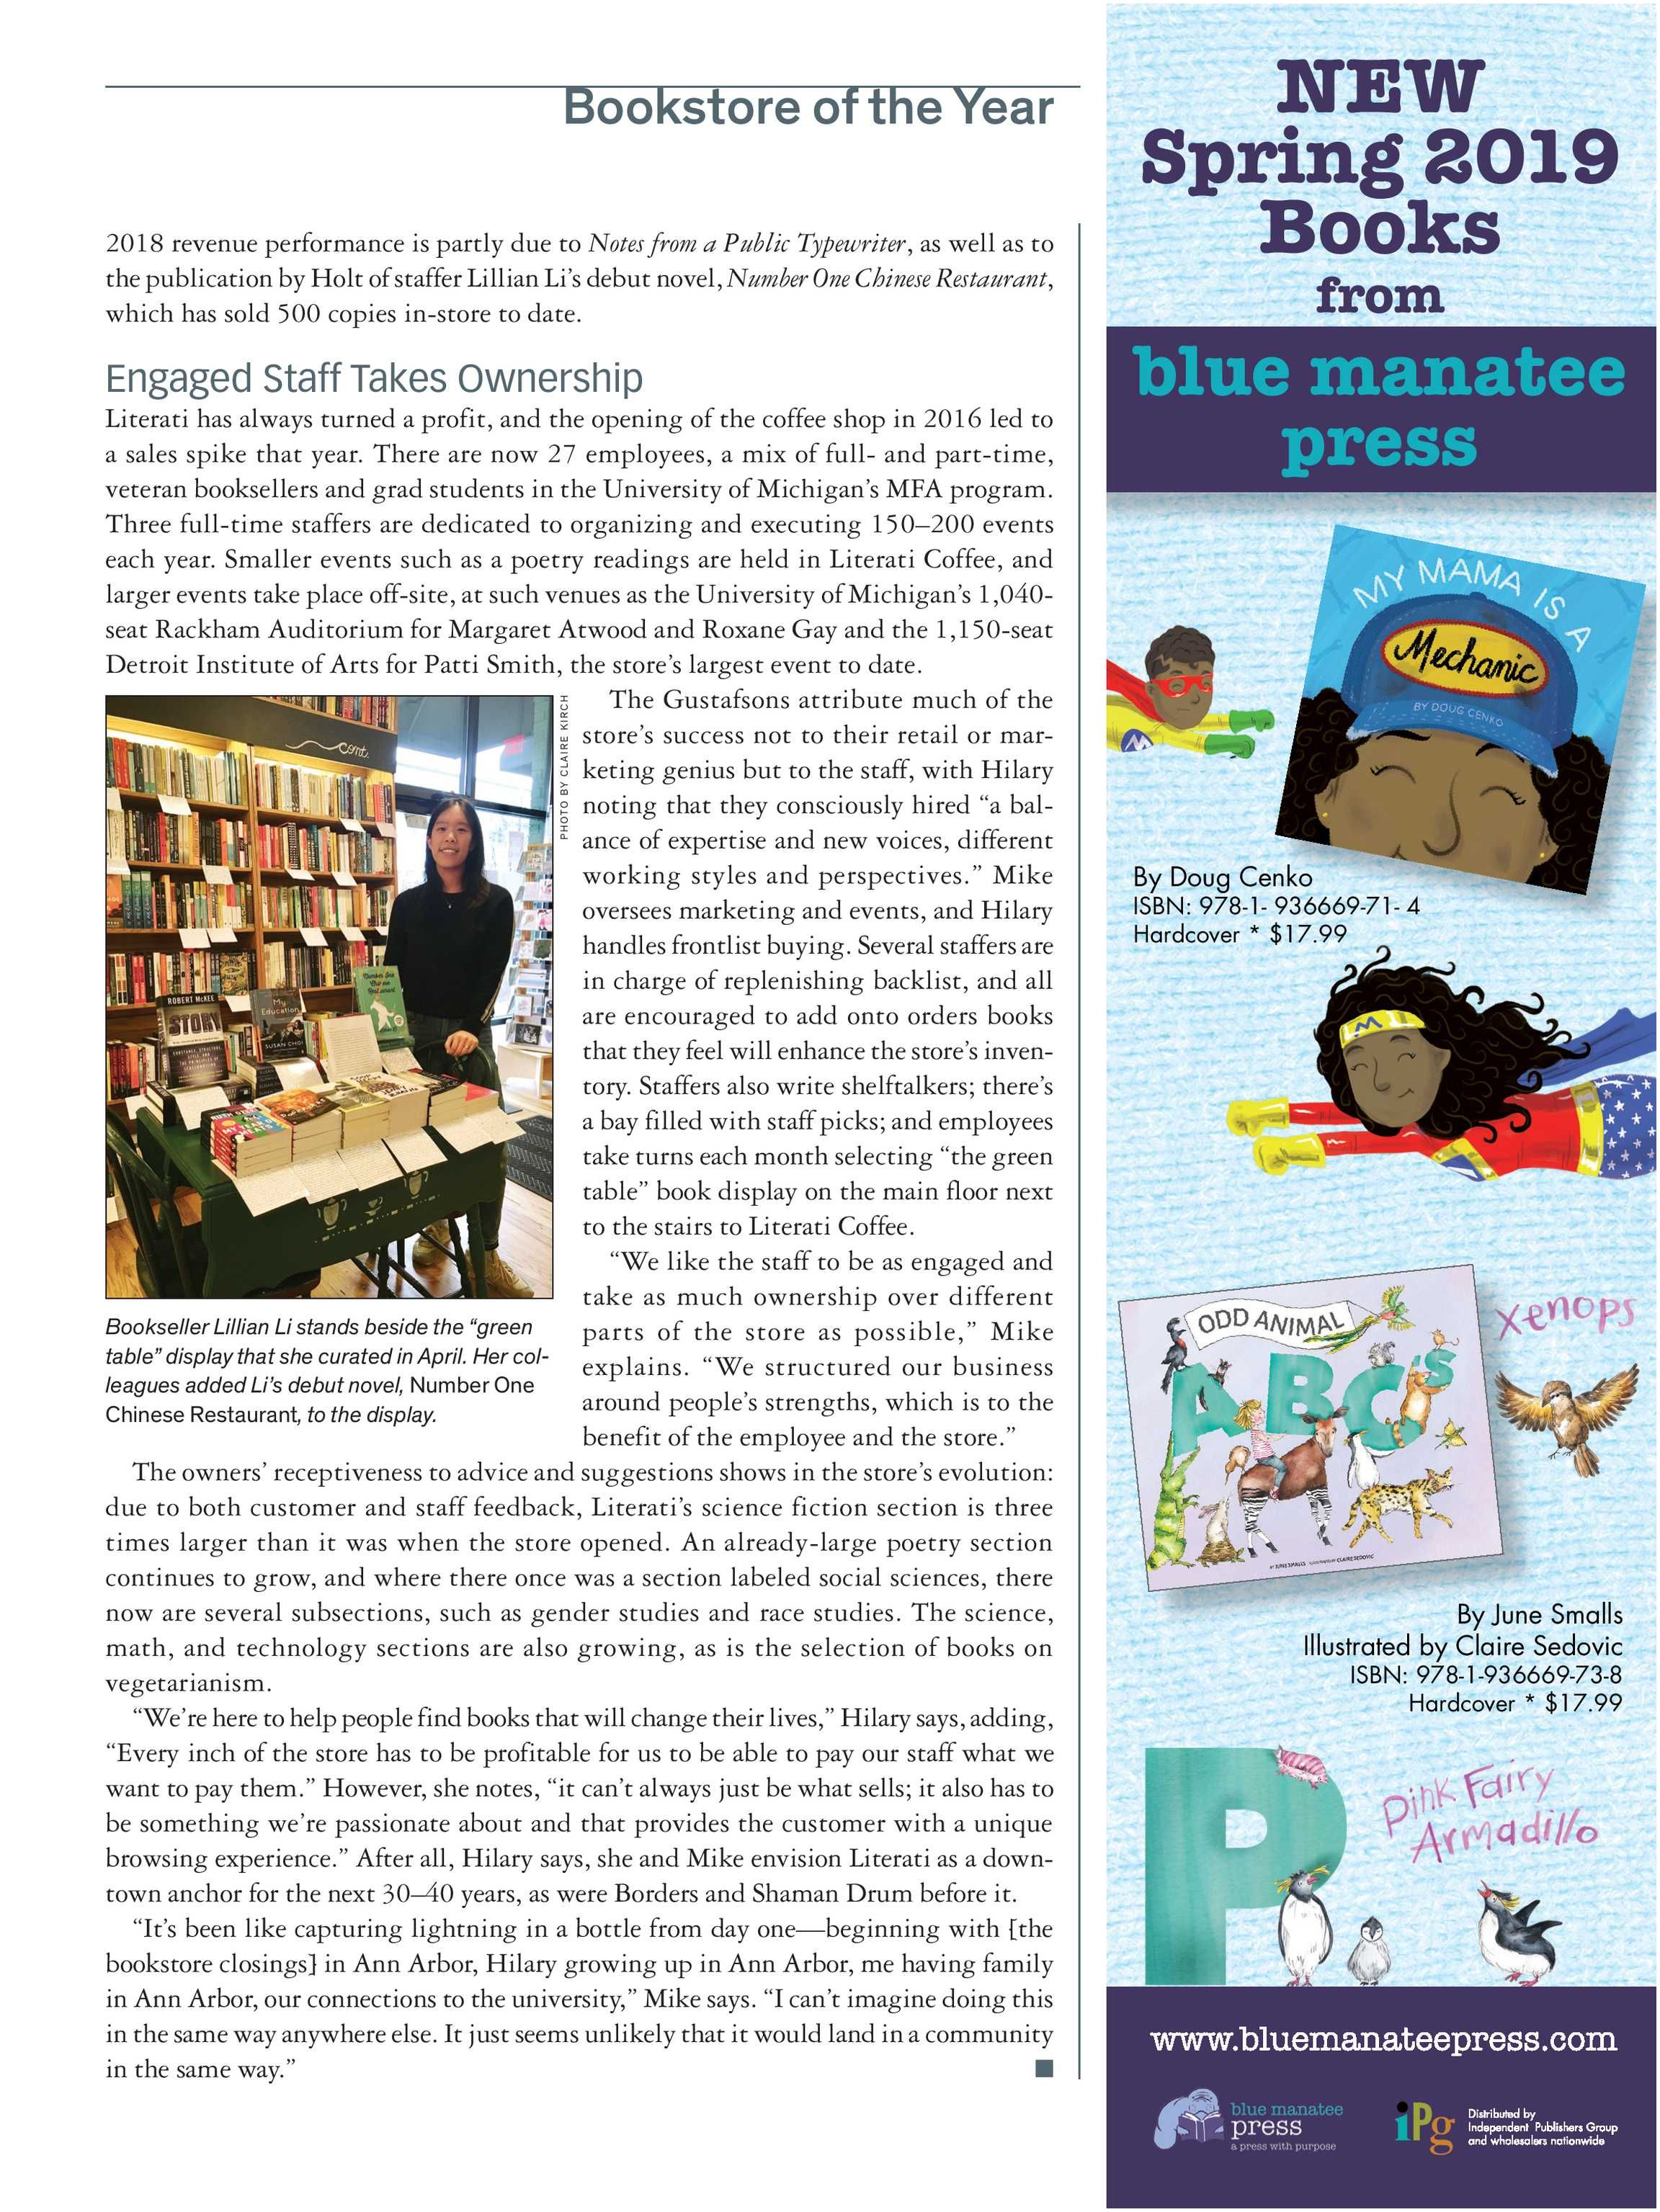 Current events A Weekly Reader Publication Publishers Weekly Book Expo Preview 2019 Page 14